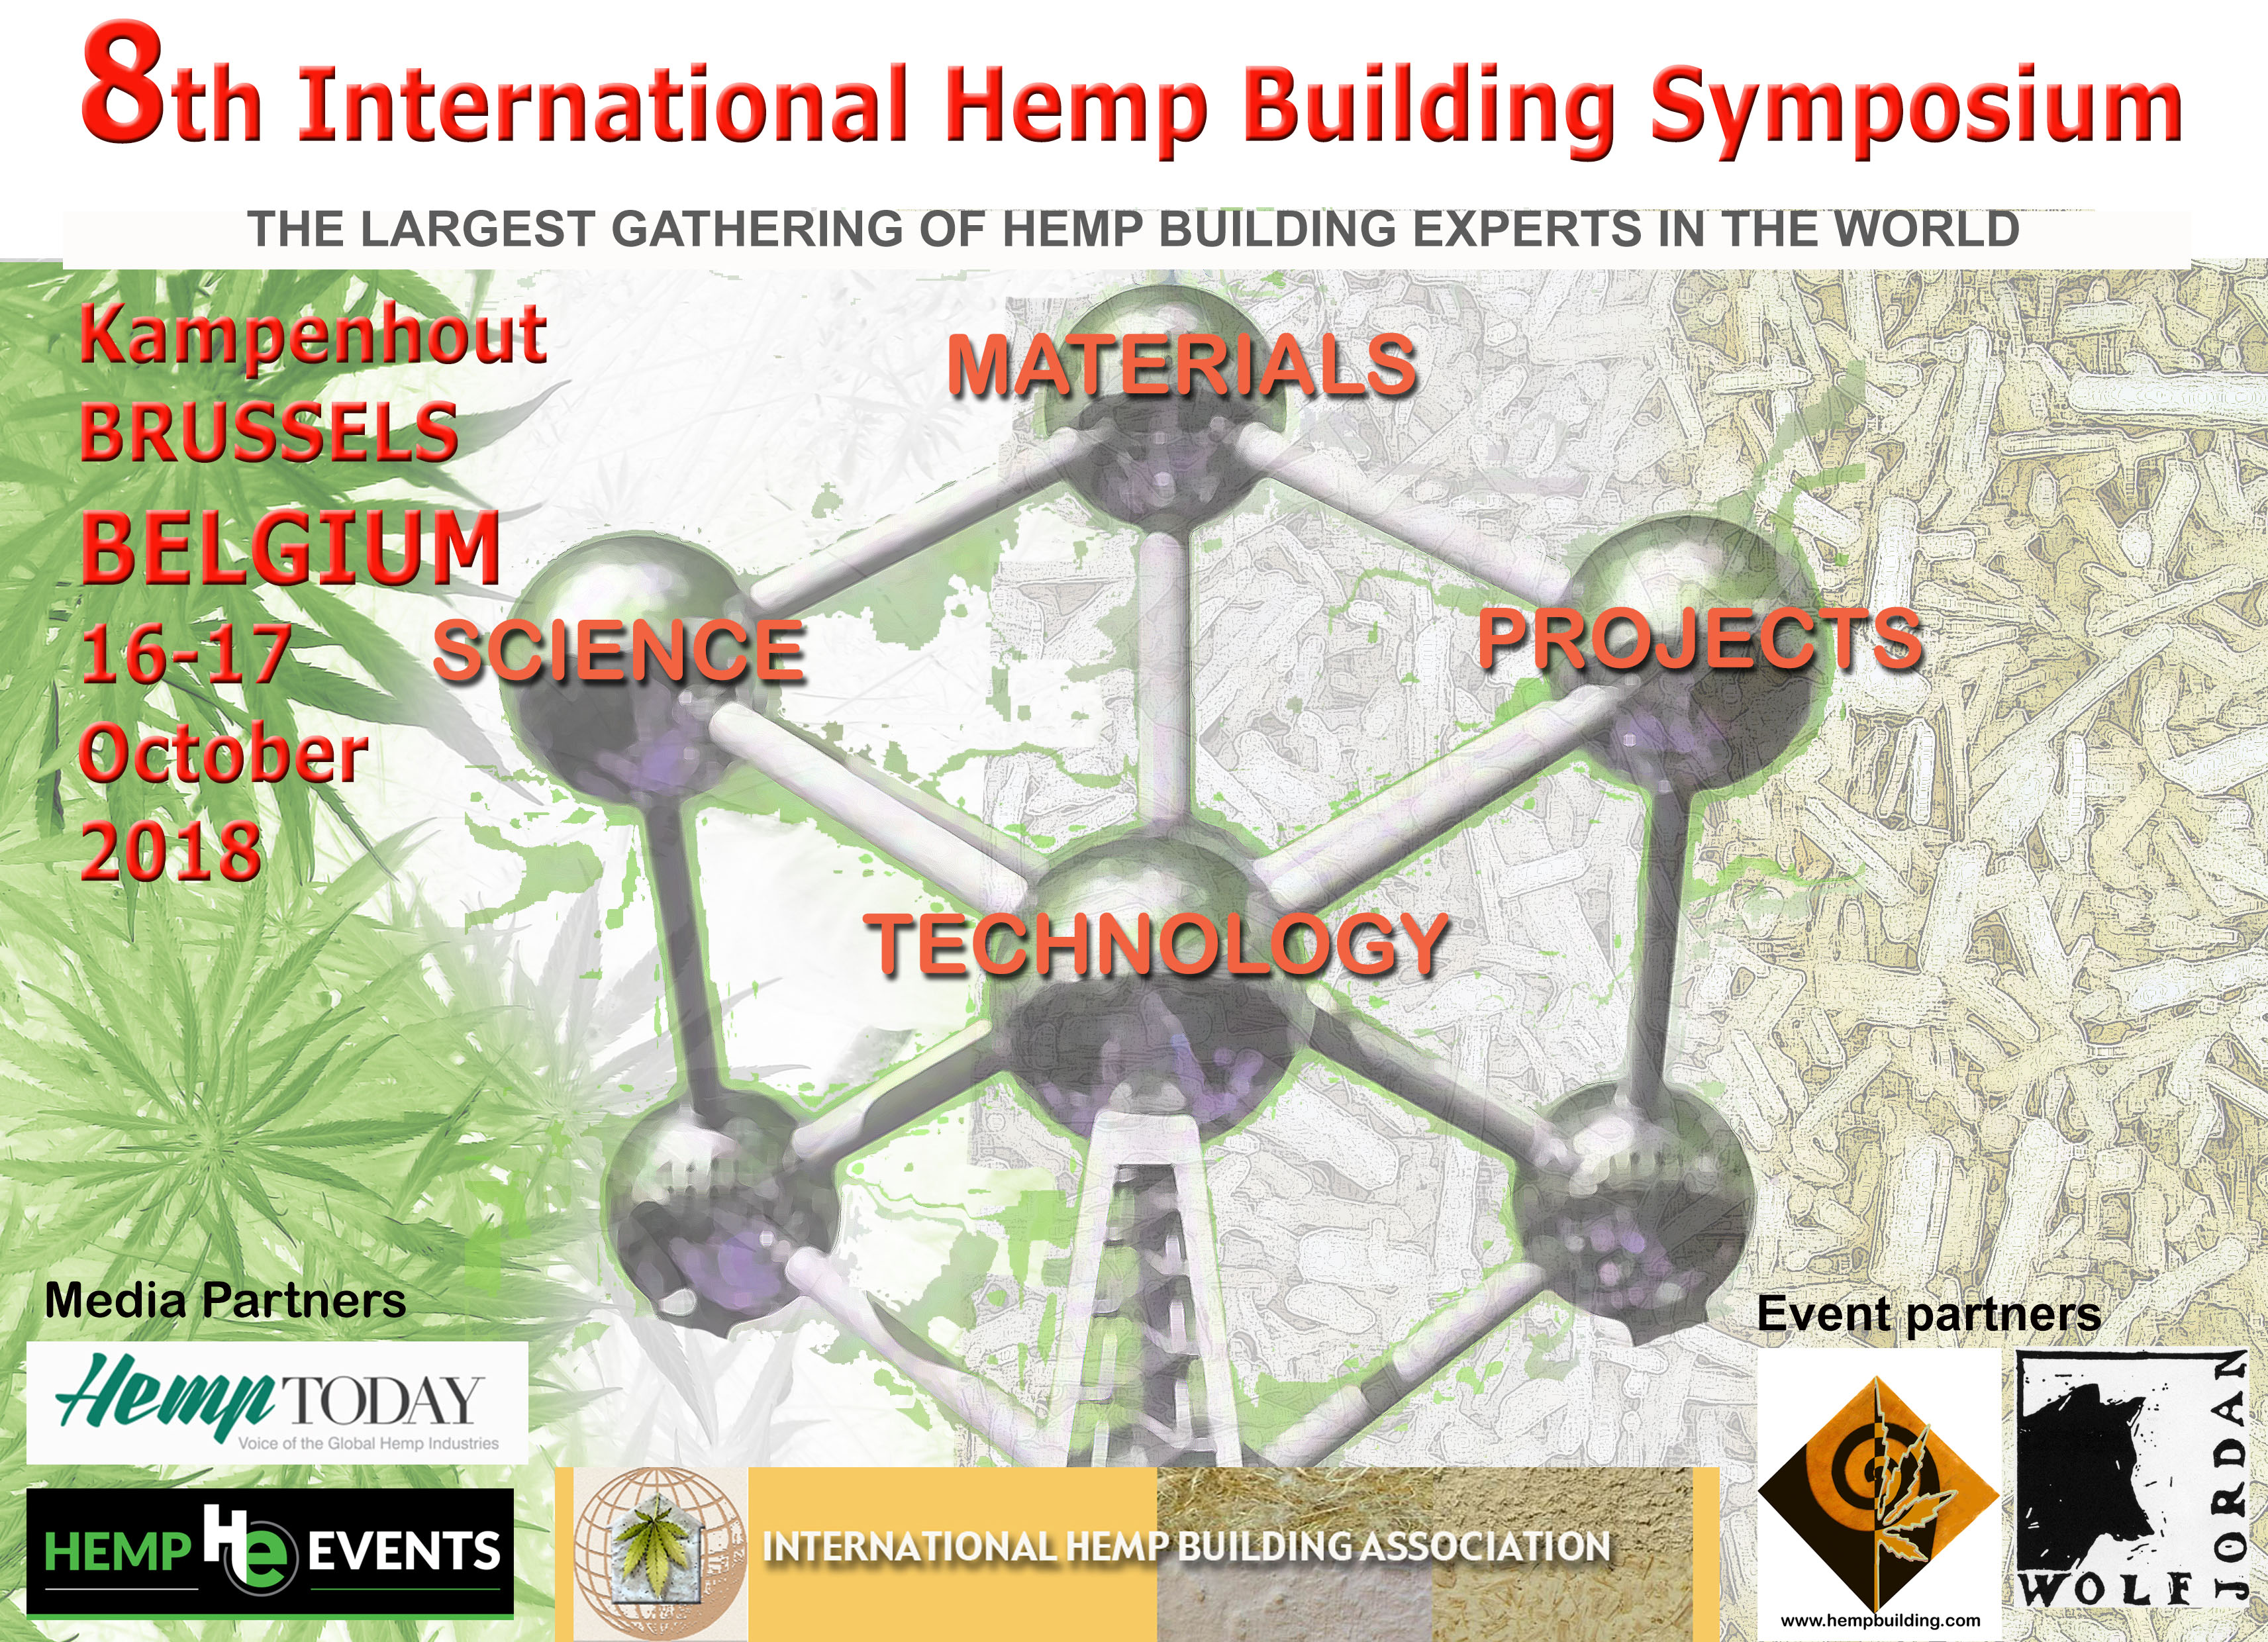 8th International Hemp Building Symposium 2018